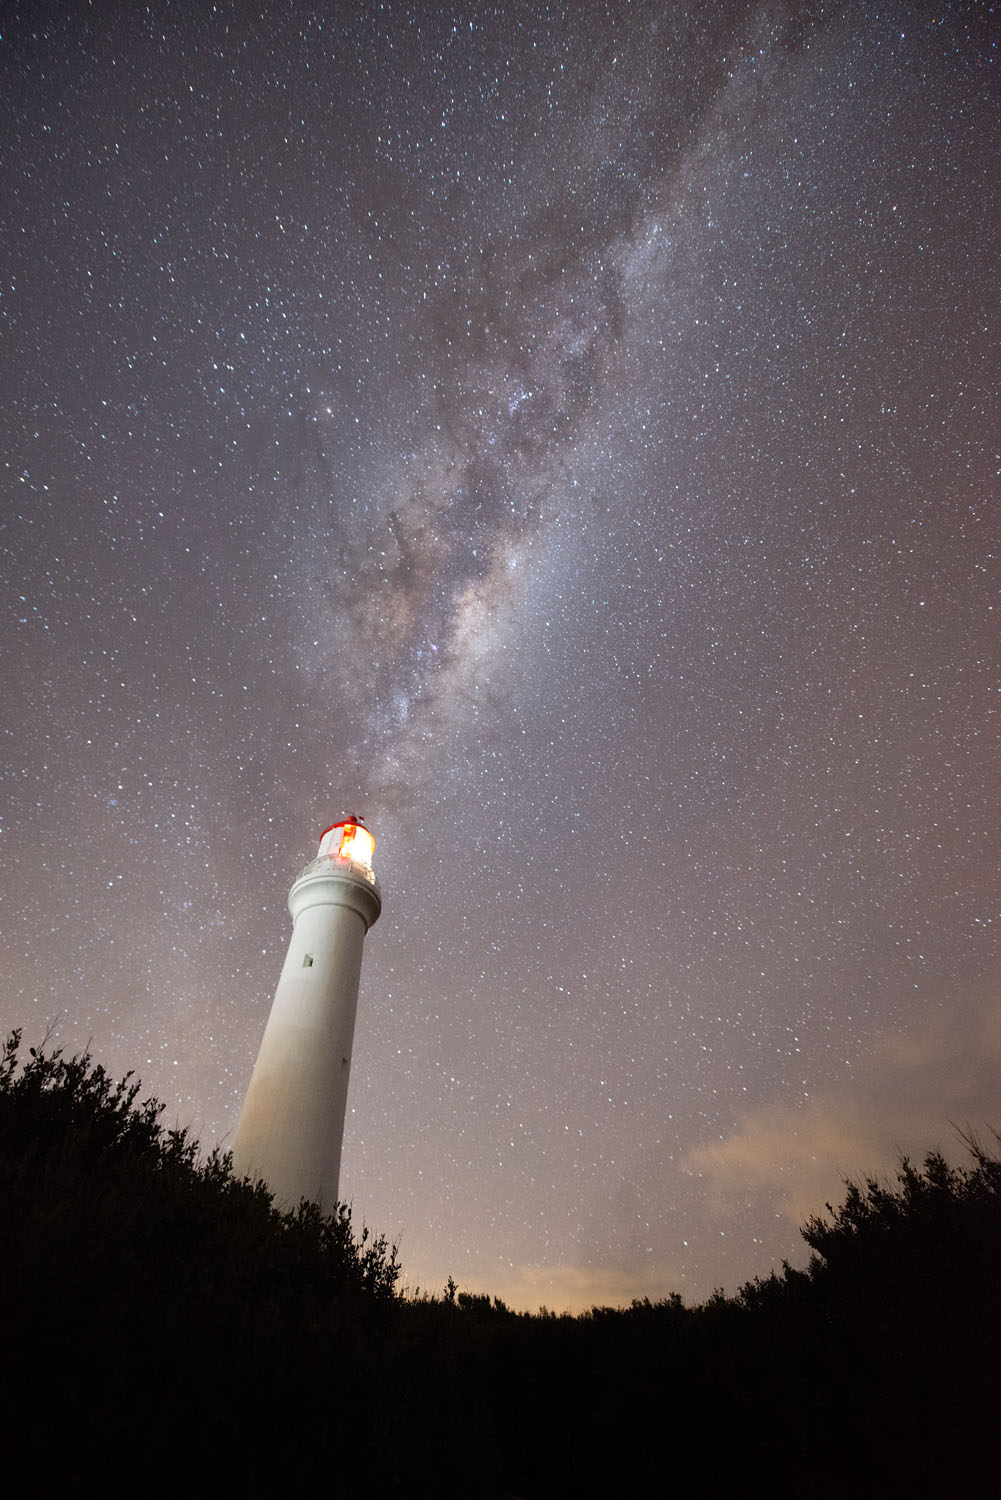 night image Milky Way and lighthouse - Tips for Processing Night Photography with ON1 Photo RAW 2018